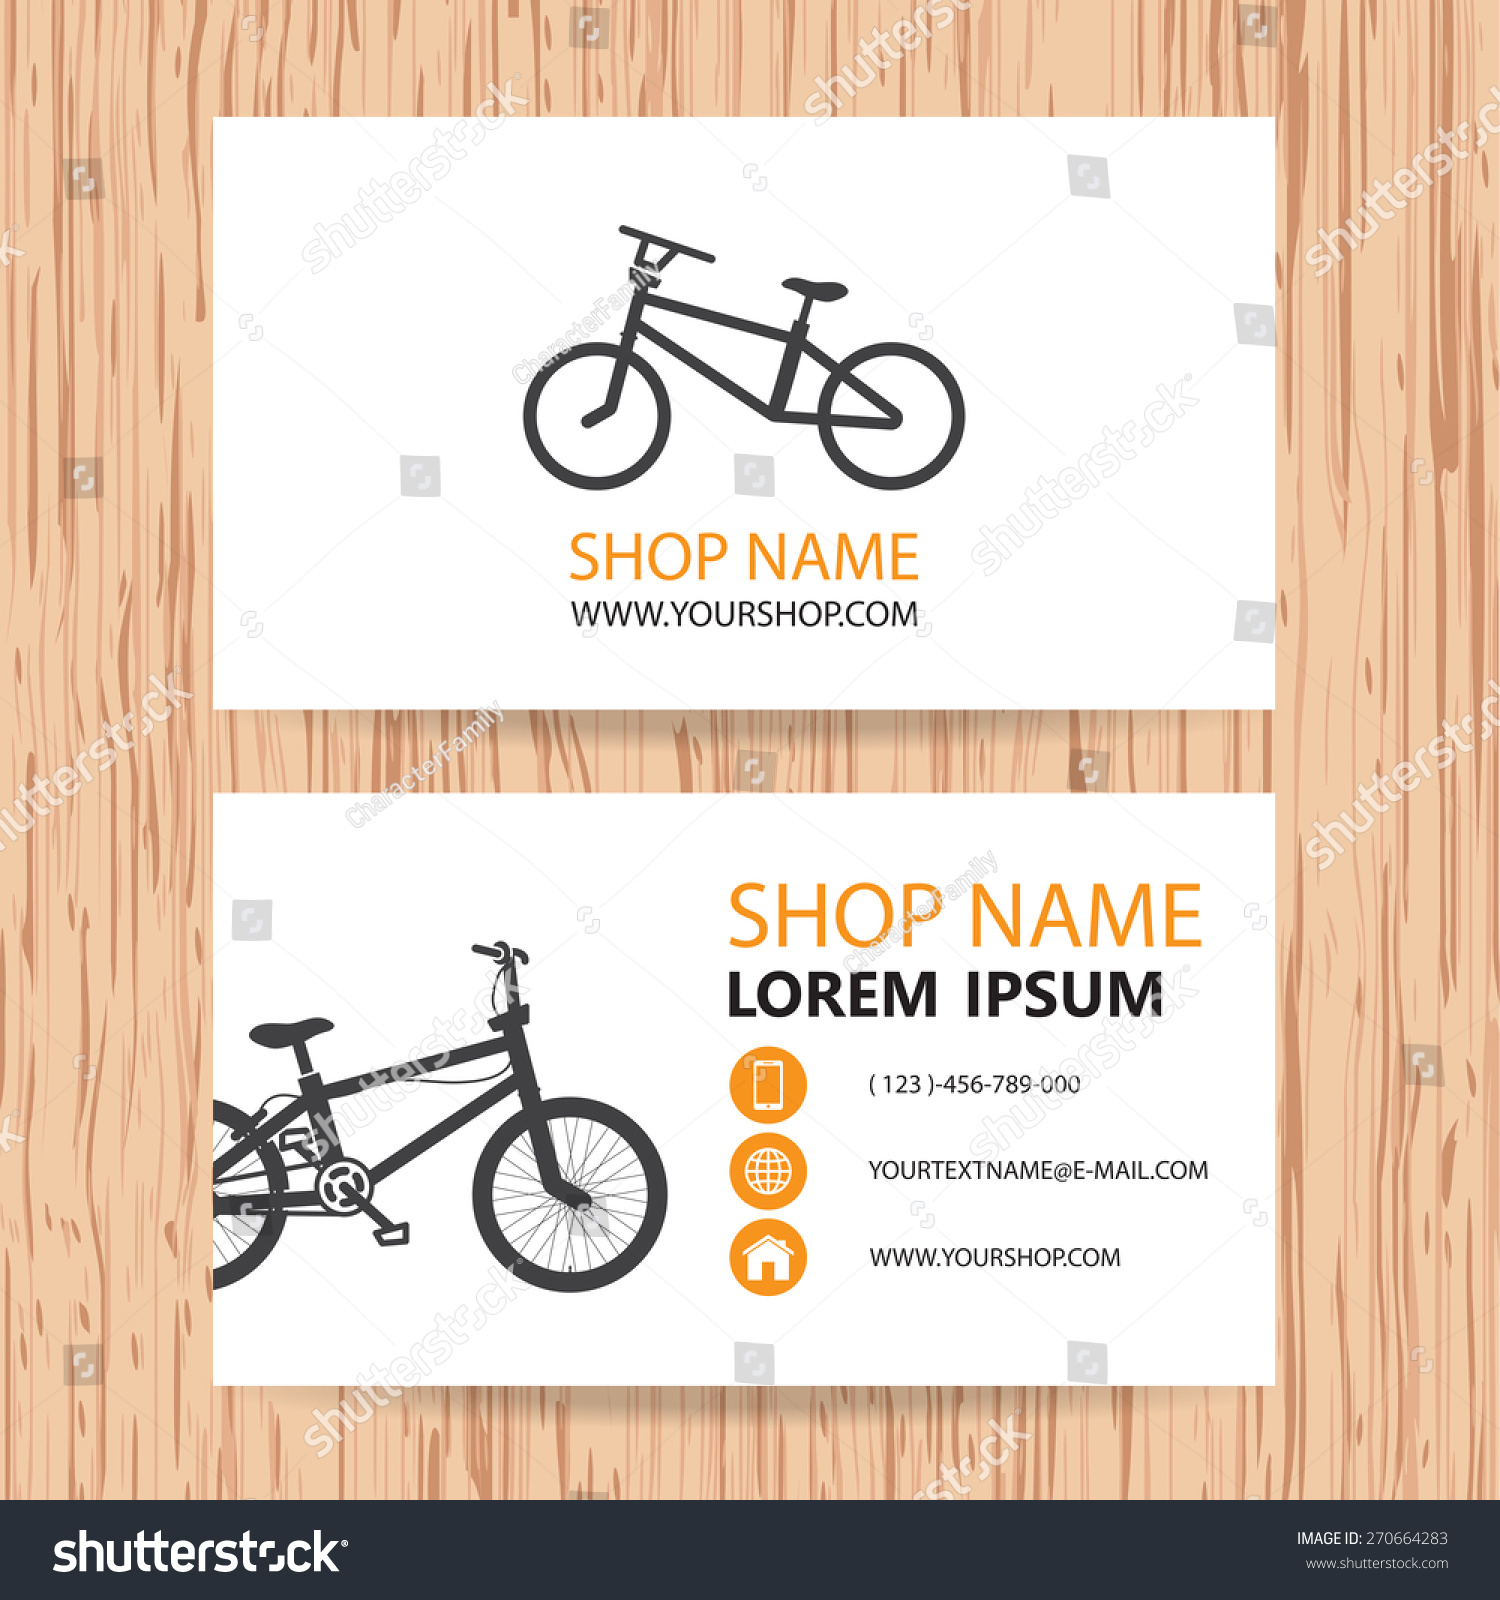 Business Card Vector Background Bike Shop Stock Vector 270664283 ...